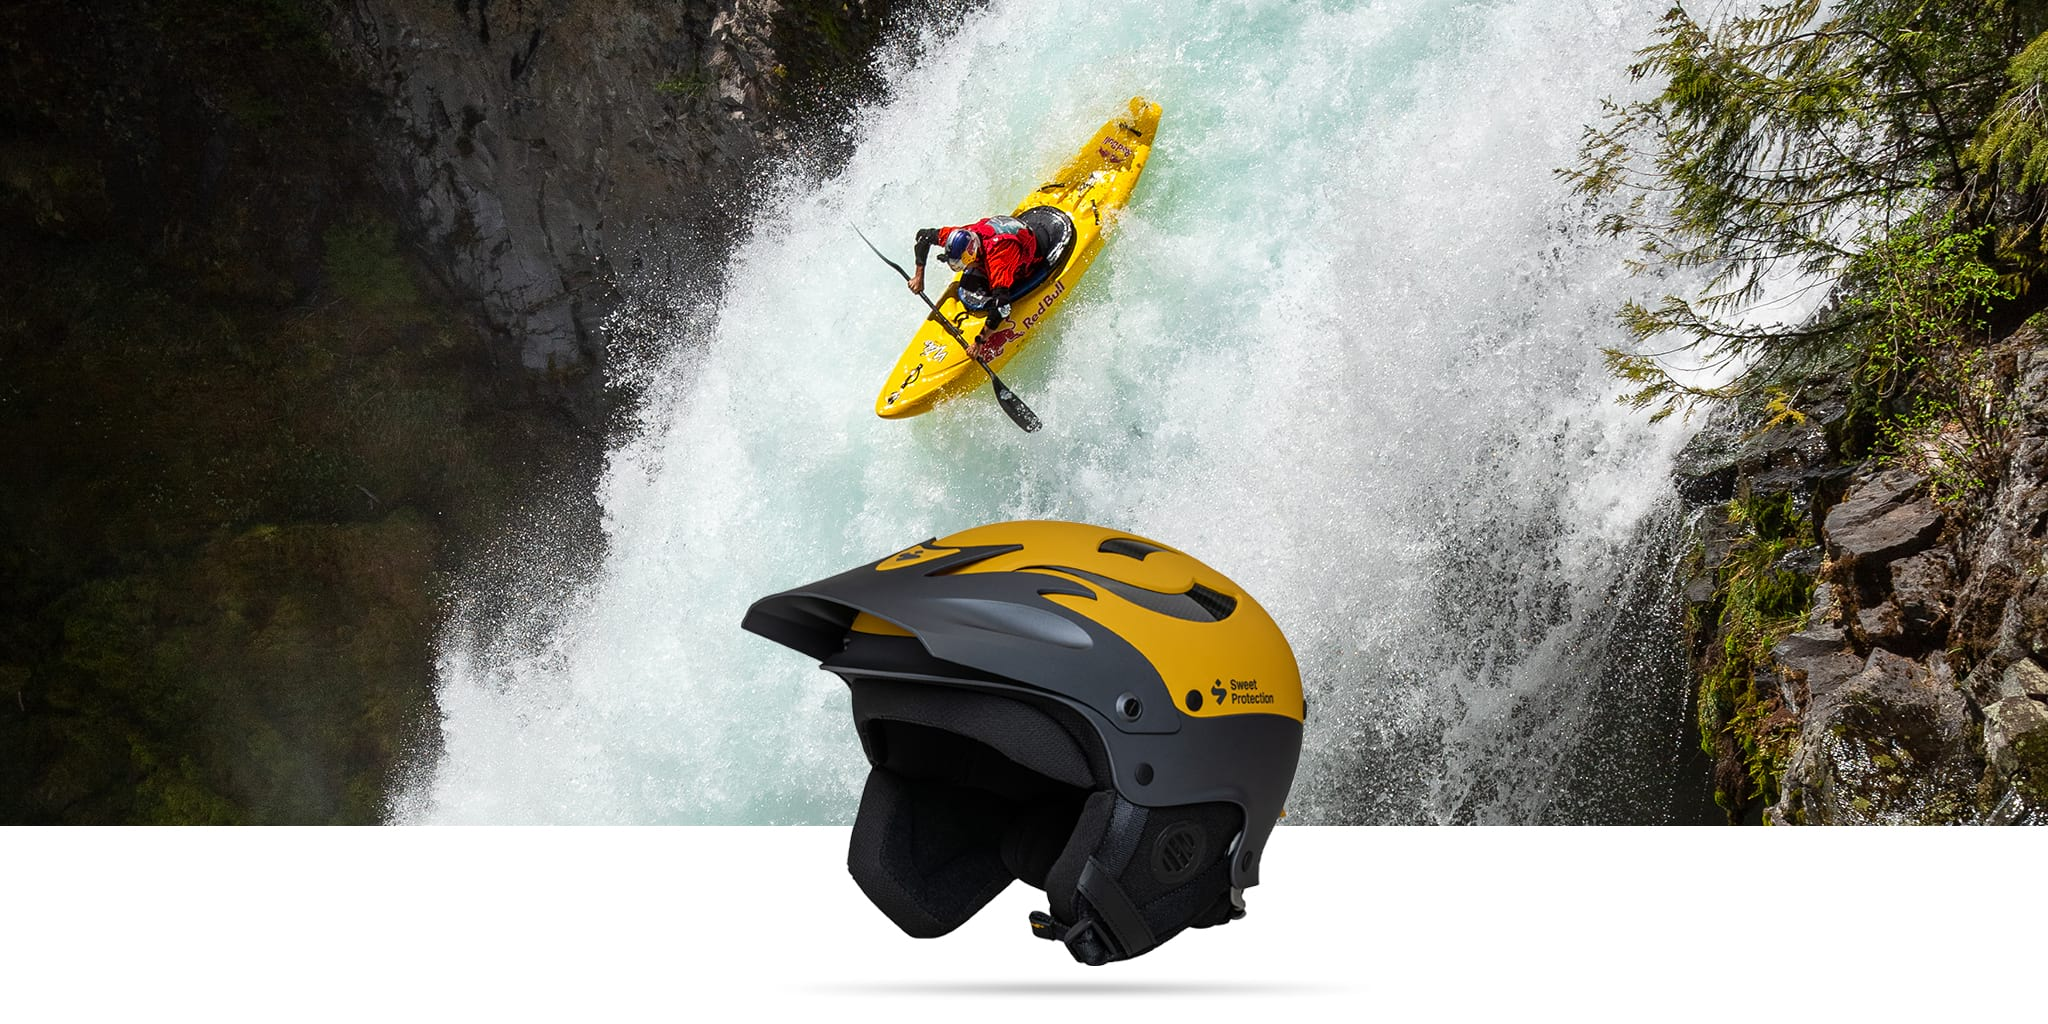 A man with paddlesport helmet kayaking down the waterfall.